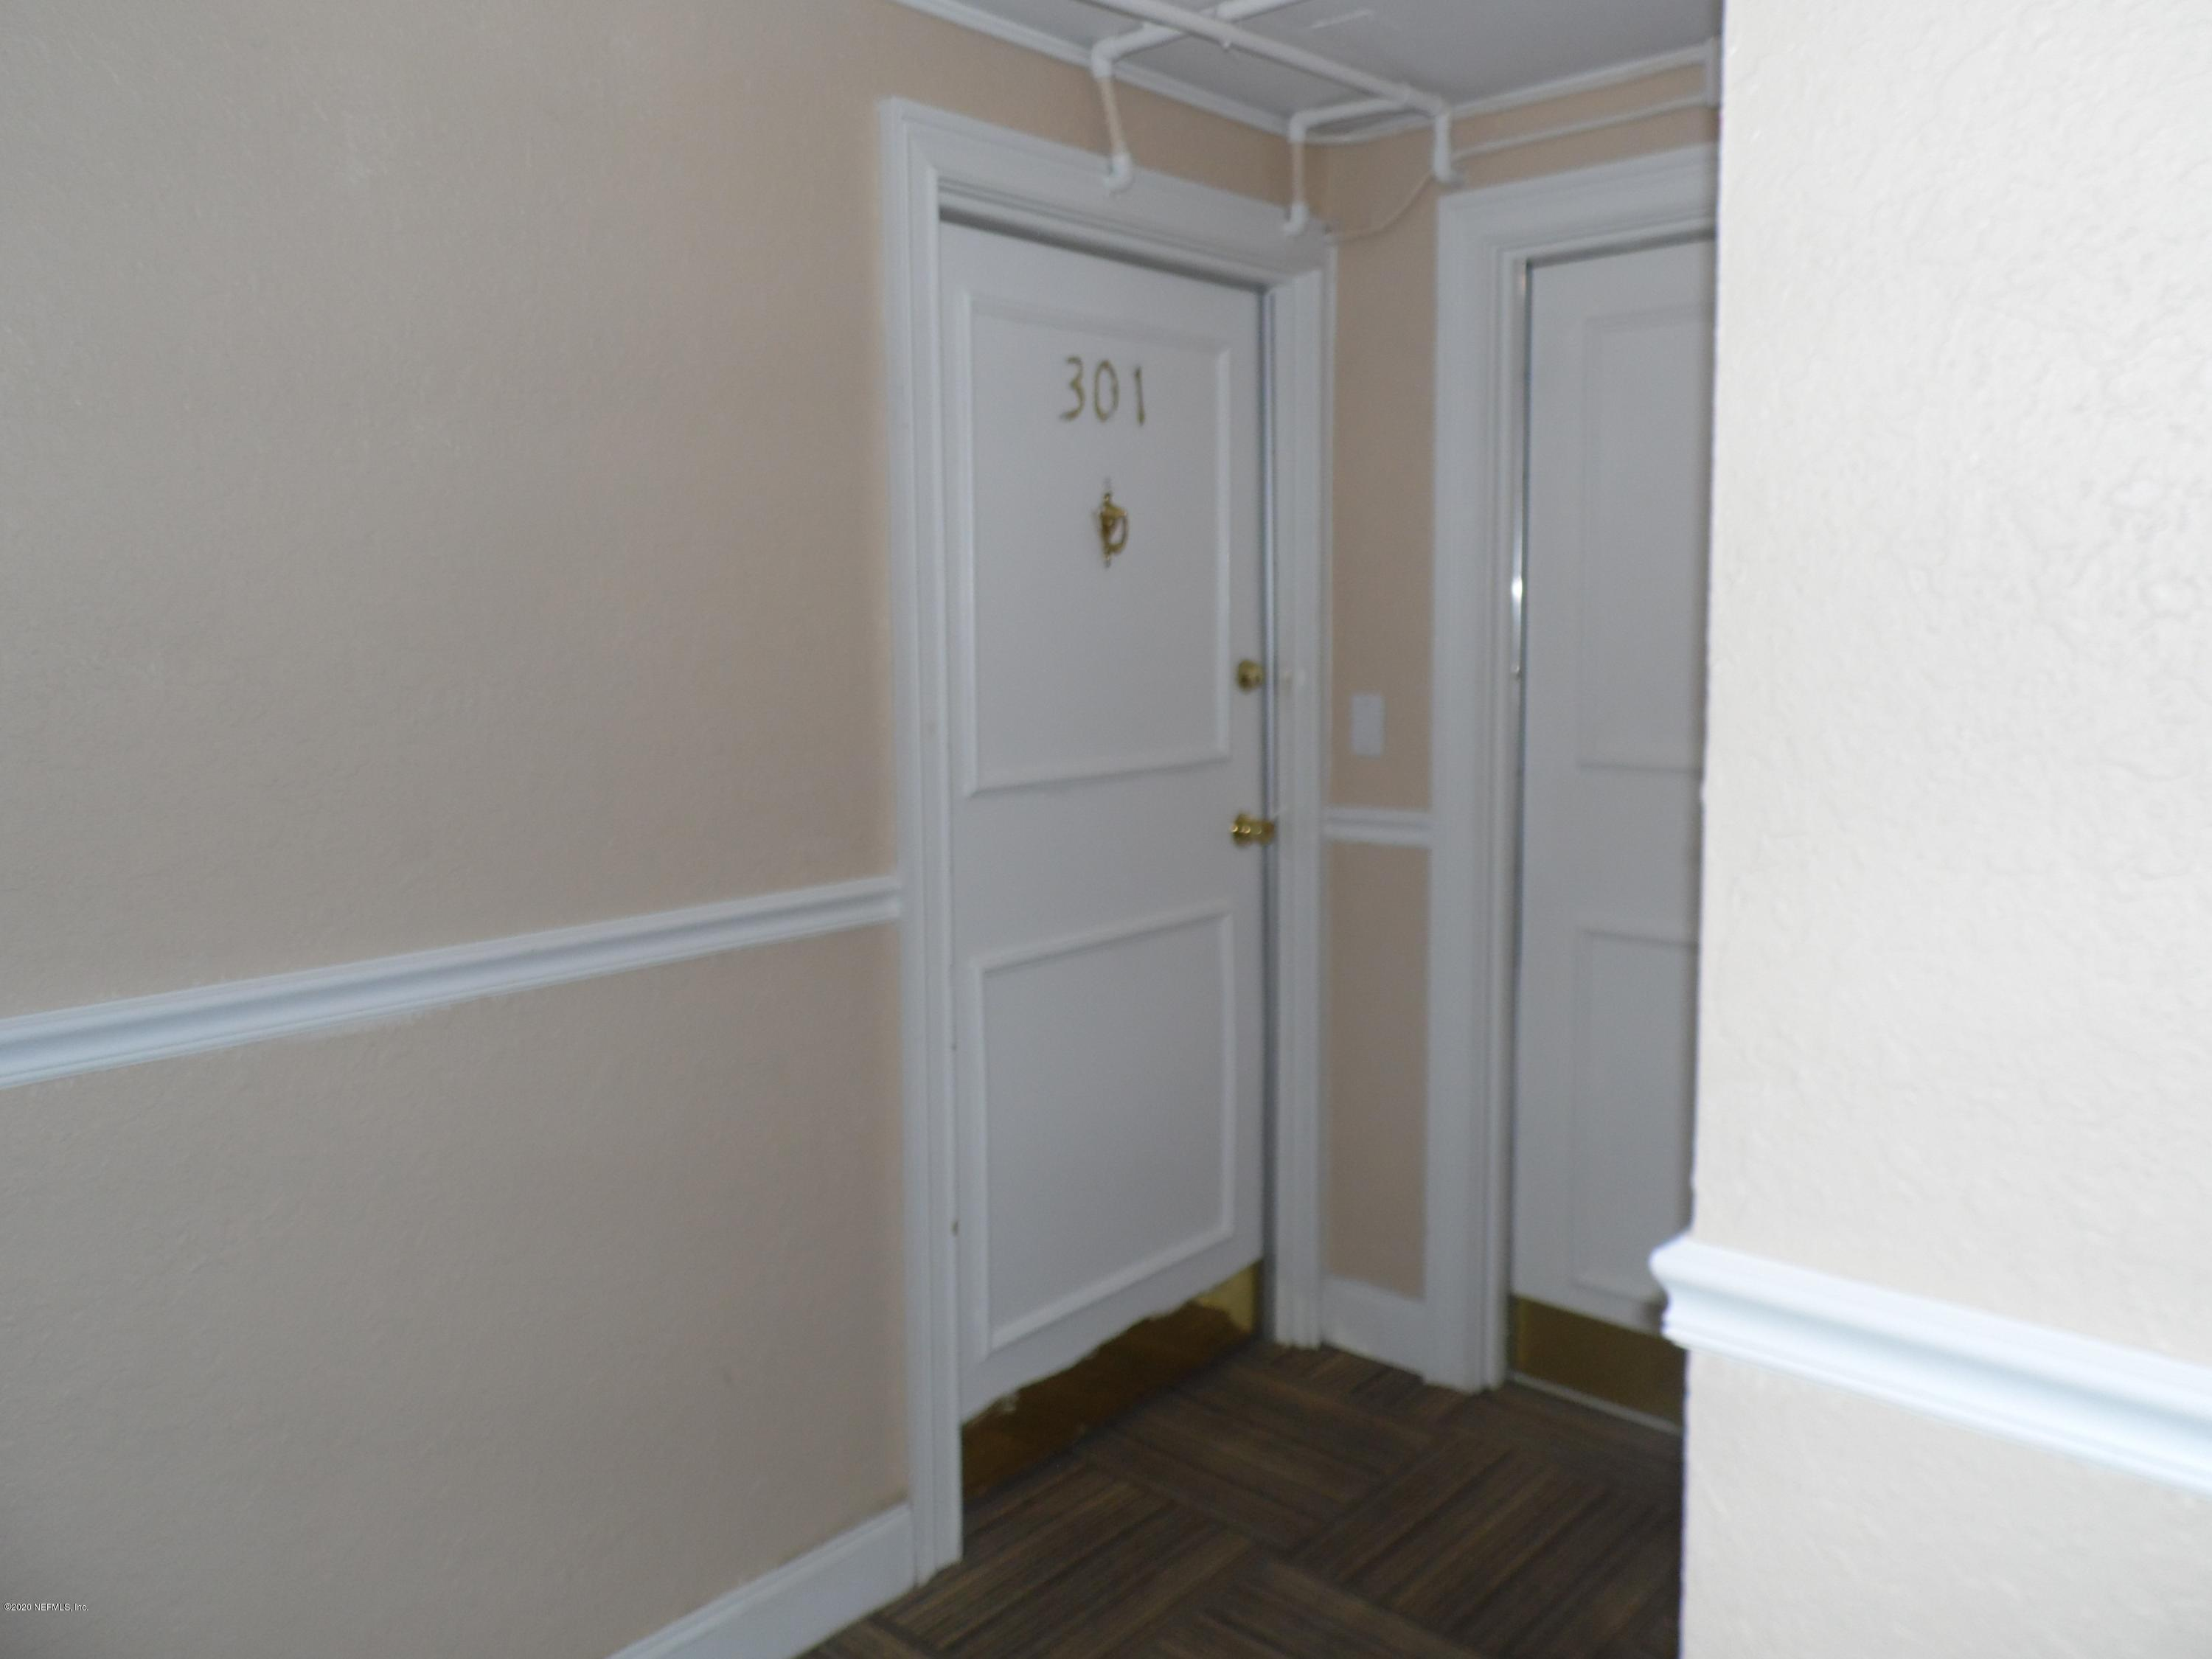 311 ASHLEY, JACKSONVILLE, FLORIDA 32202, 1 Bedroom Bedrooms, ,1 BathroomBathrooms,Investment / MultiFamily,For sale,ASHLEY,1064645